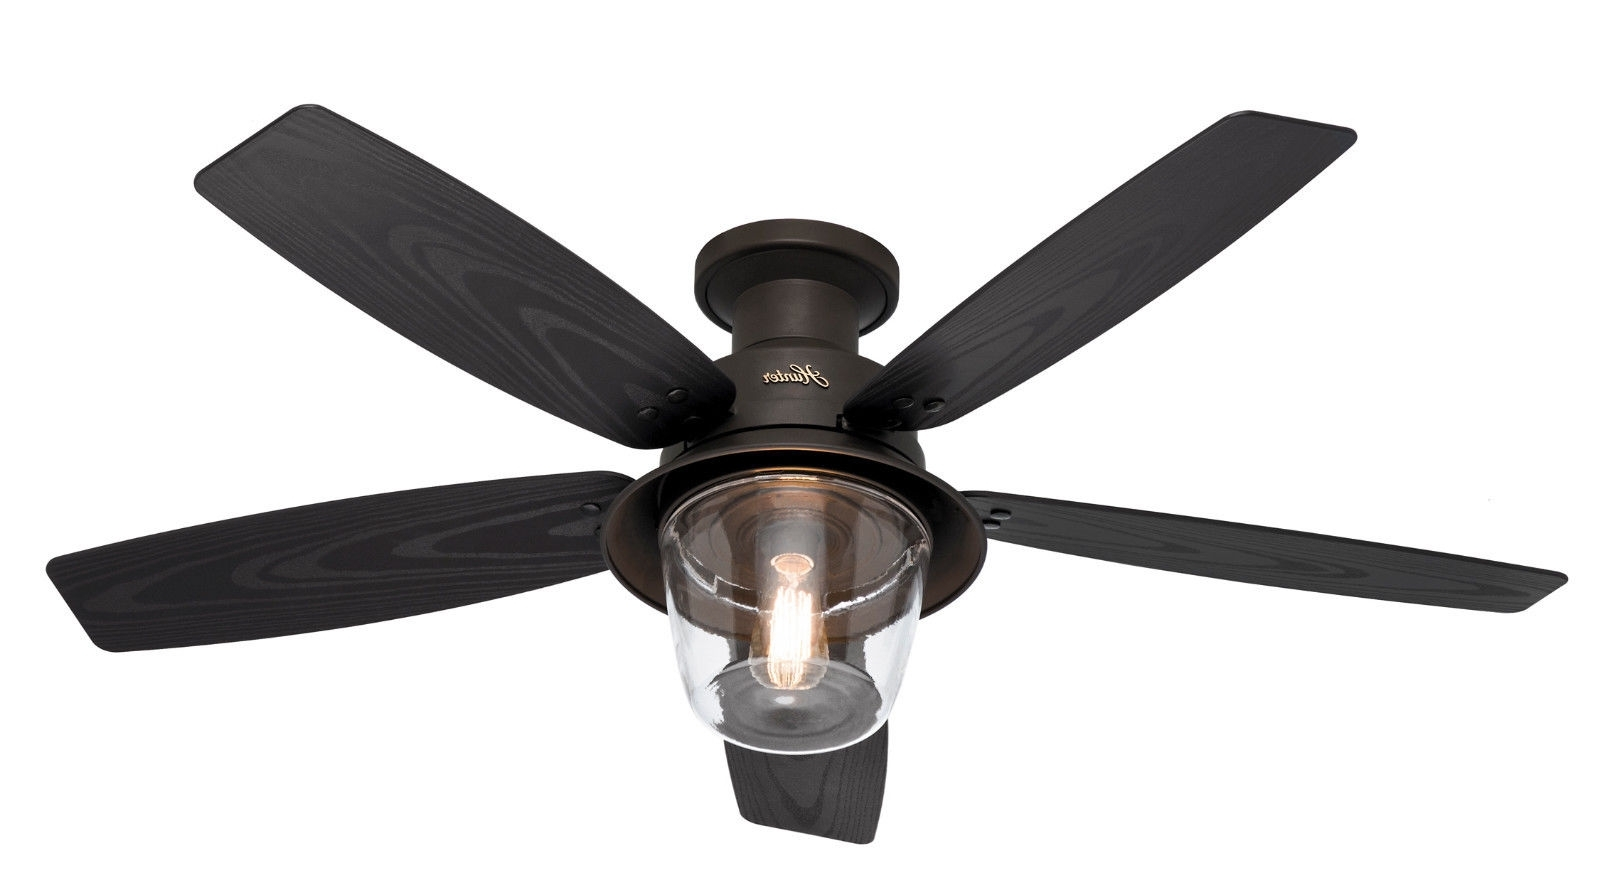 Industrial Outdoor Ceiling Fans With Light With 2018 Ceiling Fan: Breathtaking Black Industrial Ceiling Fan Ideas (Gallery 15 of 20)